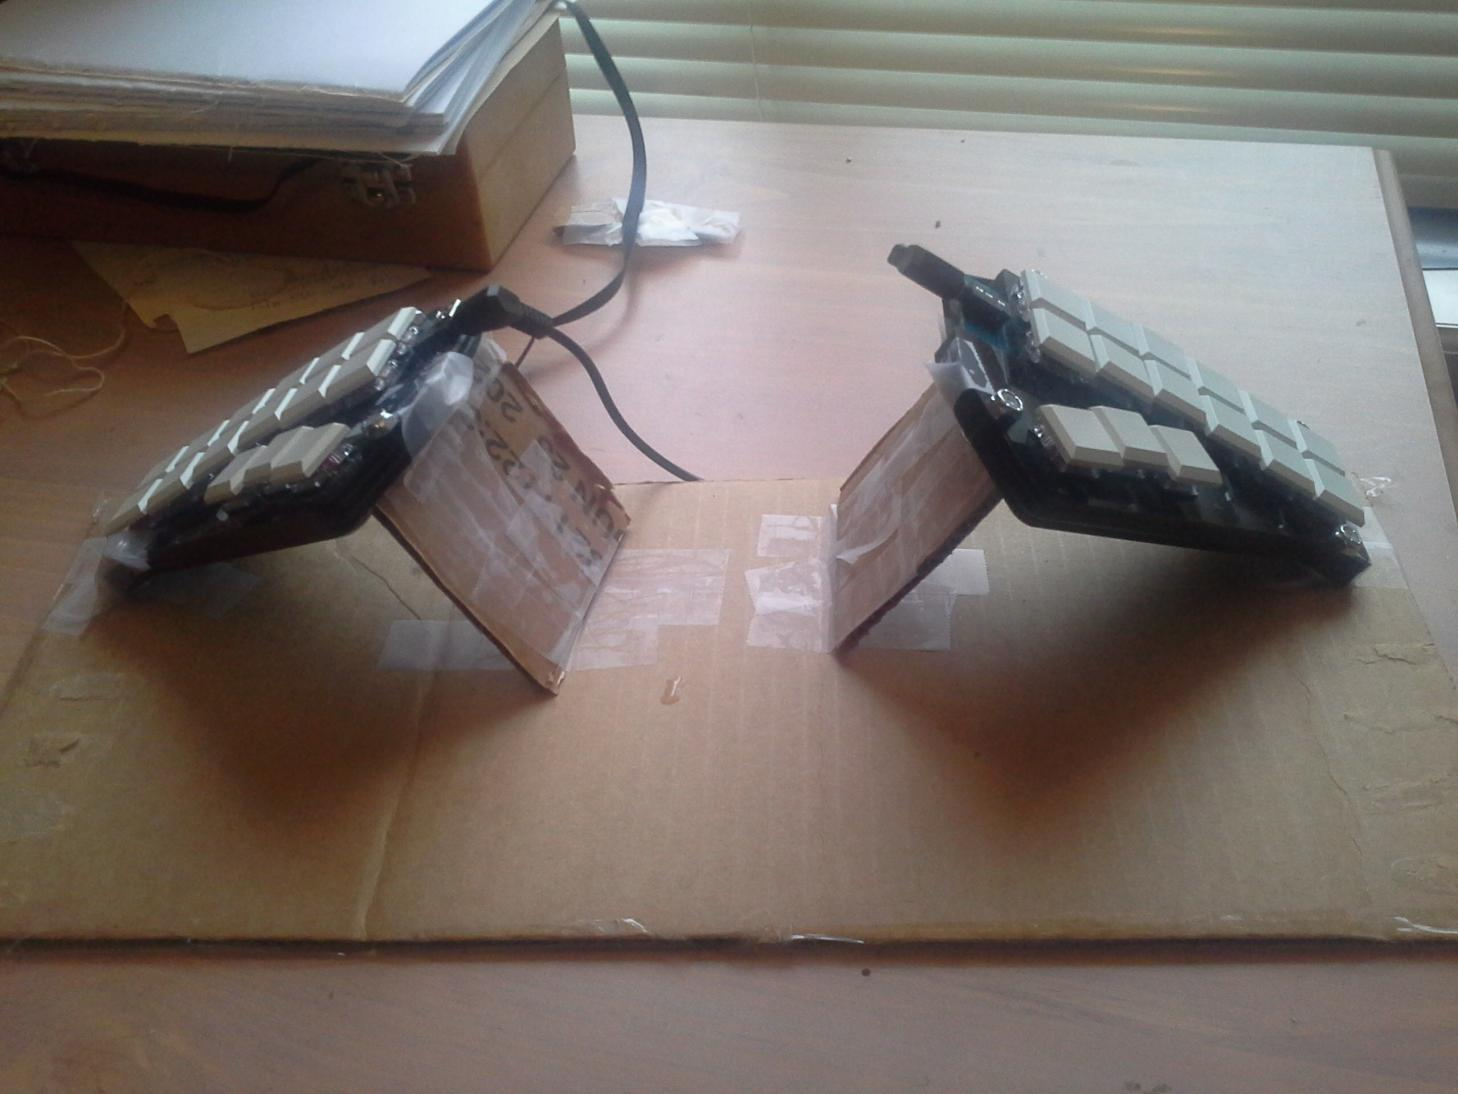 a Georgi on a desk tented using cardboard and tape